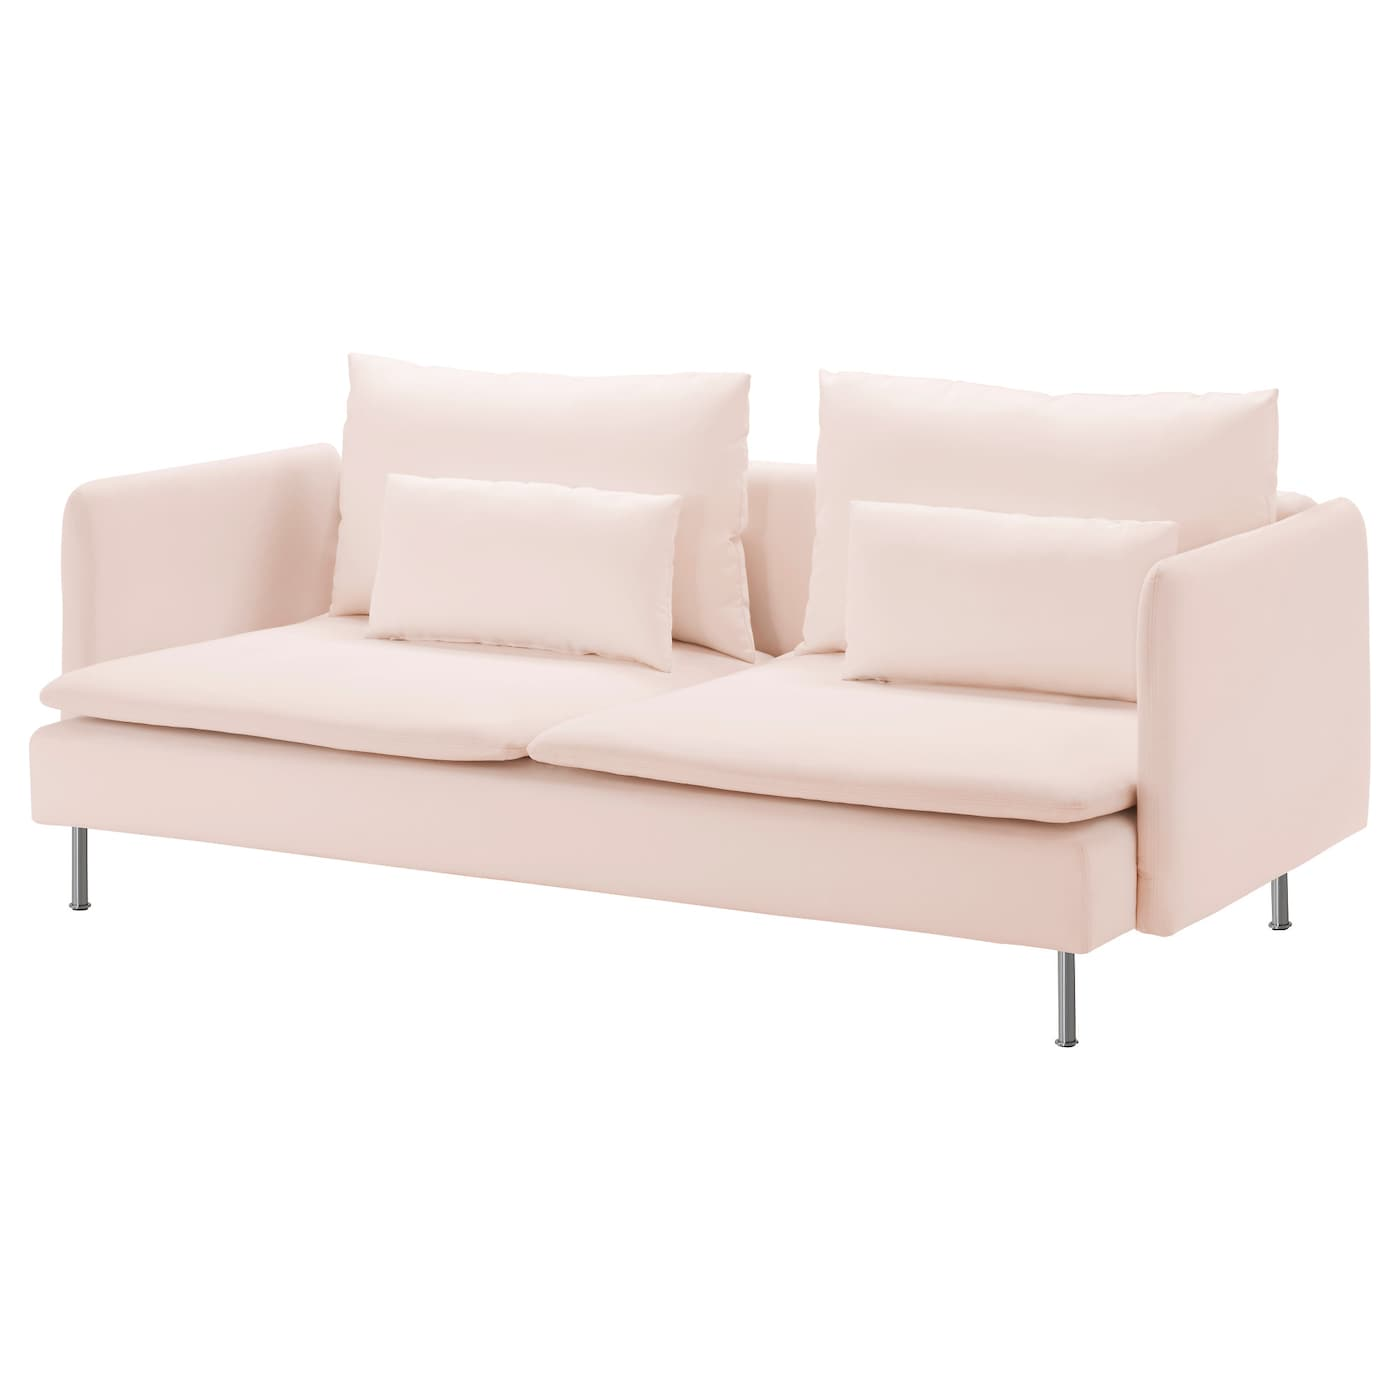 s derhamn three seat sofa samsta light pink ikea. Black Bedroom Furniture Sets. Home Design Ideas